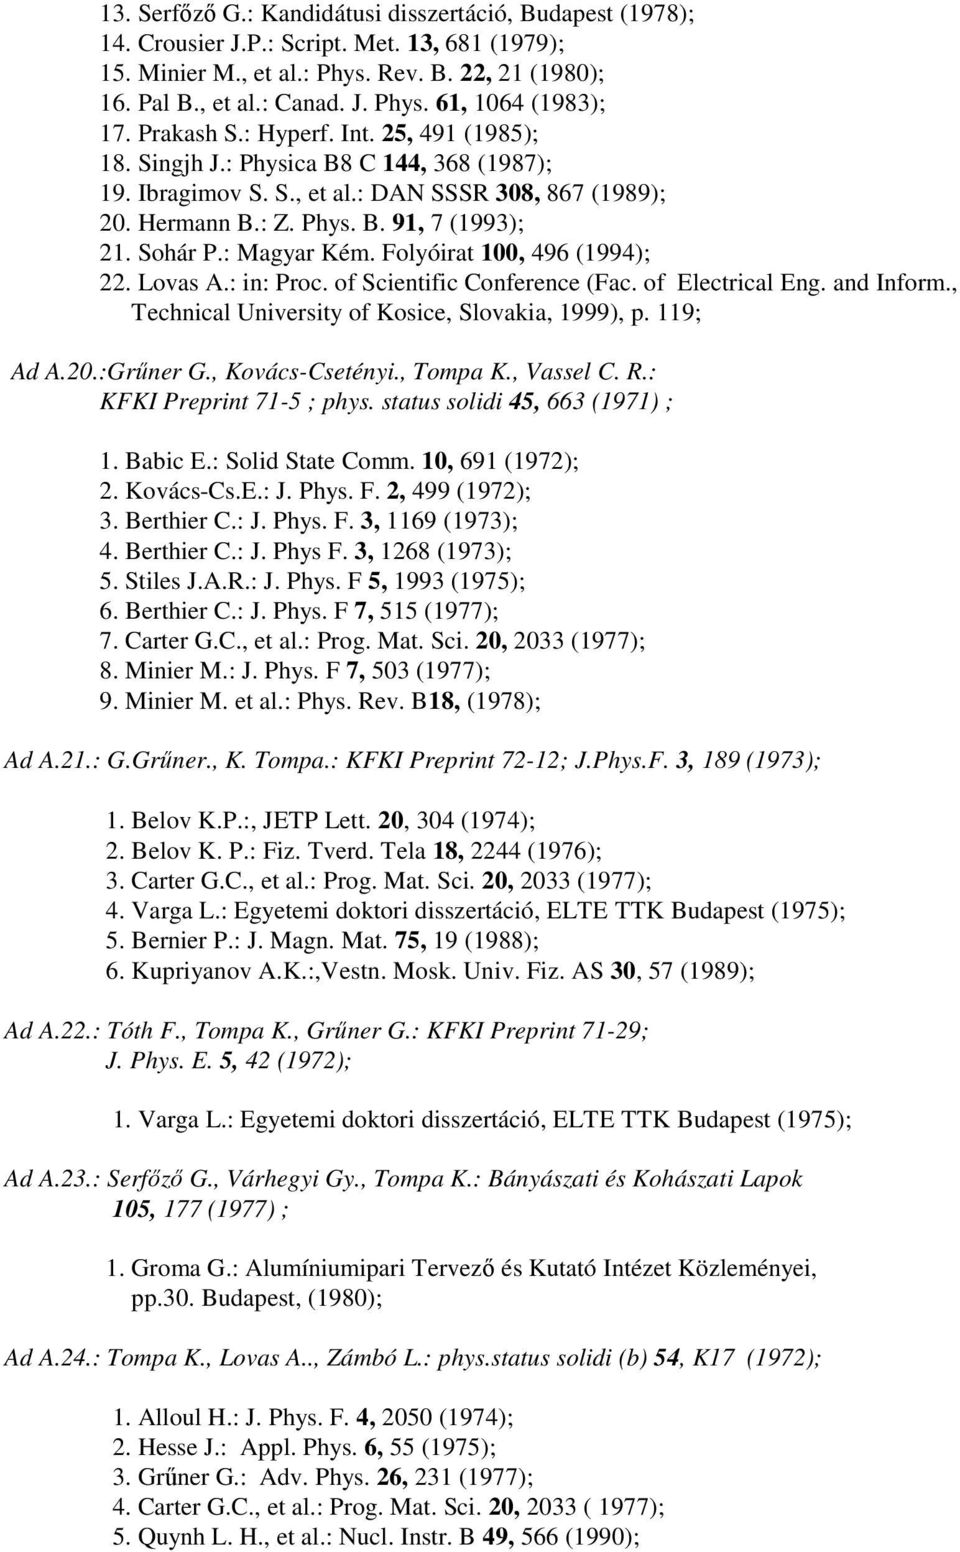 : Magyar Kém. Folyóirat 100, 496 (1994); 22. Lovas A.: in: Proc. of Scientific Conference (Fac. of Electrical Eng. and Inform., Technical University of Kosice, Slovakia, 1999), p. 119; Ad A.20.